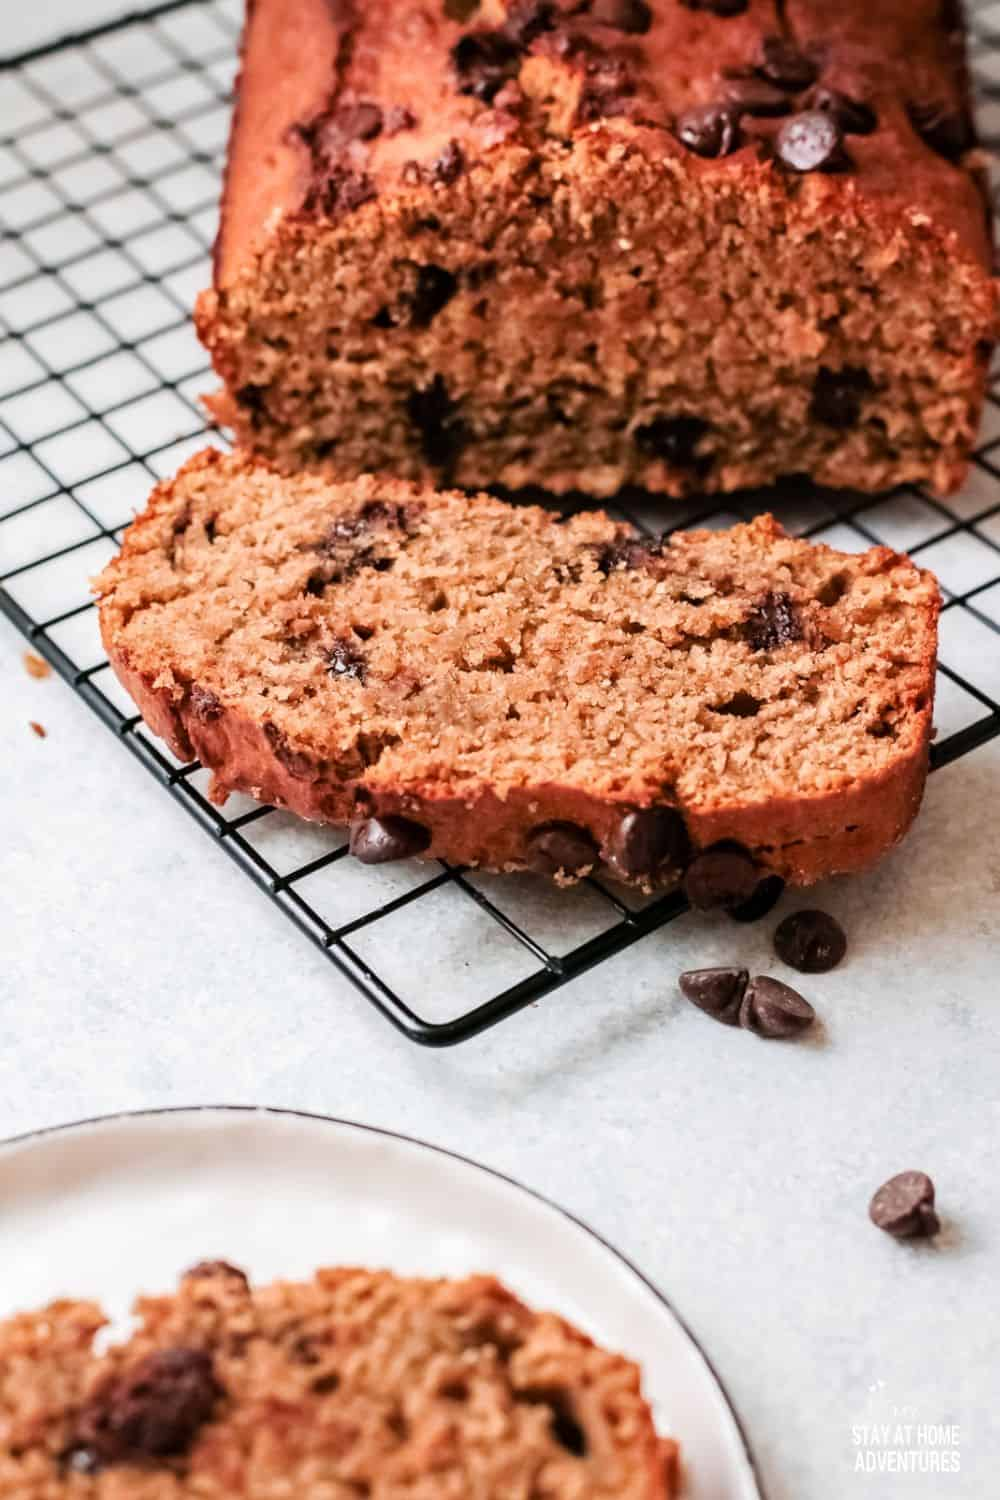 With chocolate chips and banana bread together, everybody's goin' bananas. This wonderfully delicious Chocolate Chip Banana Bread is the best! via @mystayathome